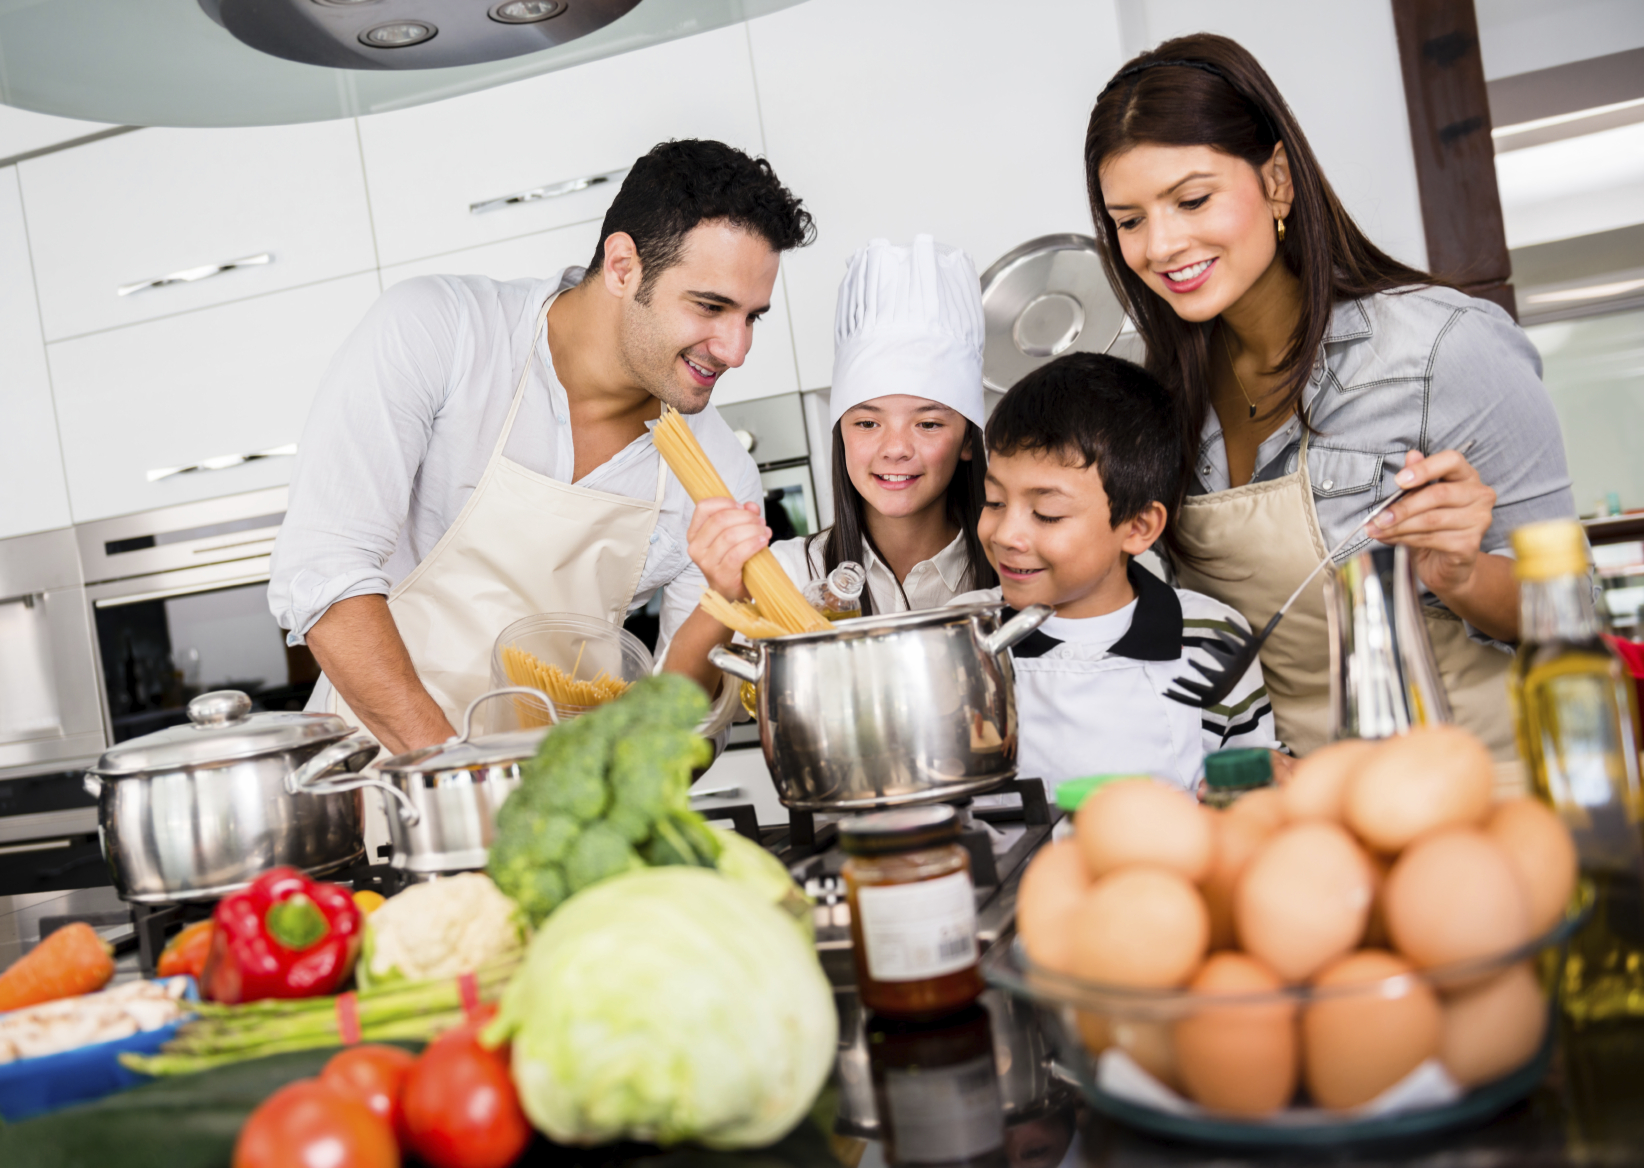 Family cooking kitchen - Beautiful Family Cooking Together Dinner And Looking Very Happy